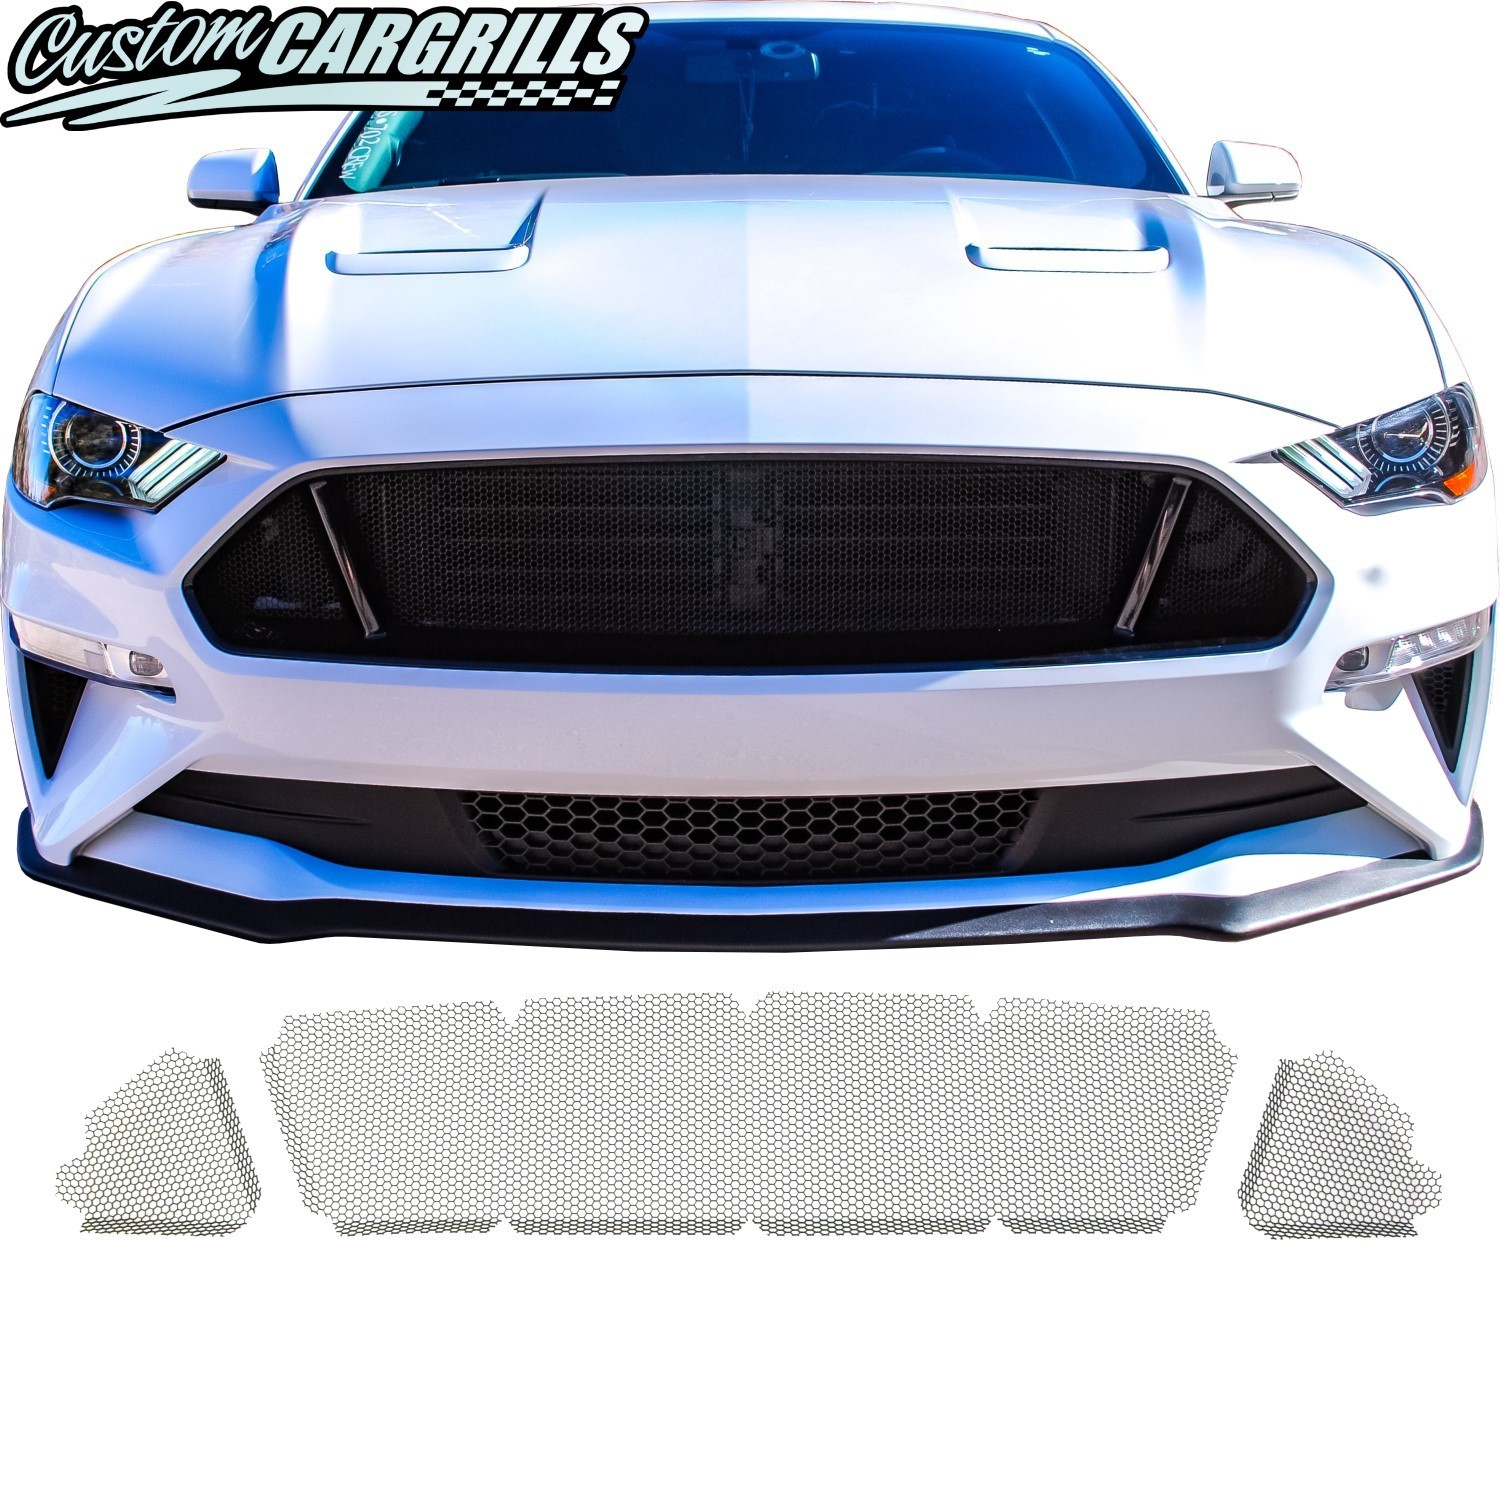 Honeycomb Mesh Grill Kit for 2018 - 2019 Ford Mustang GT